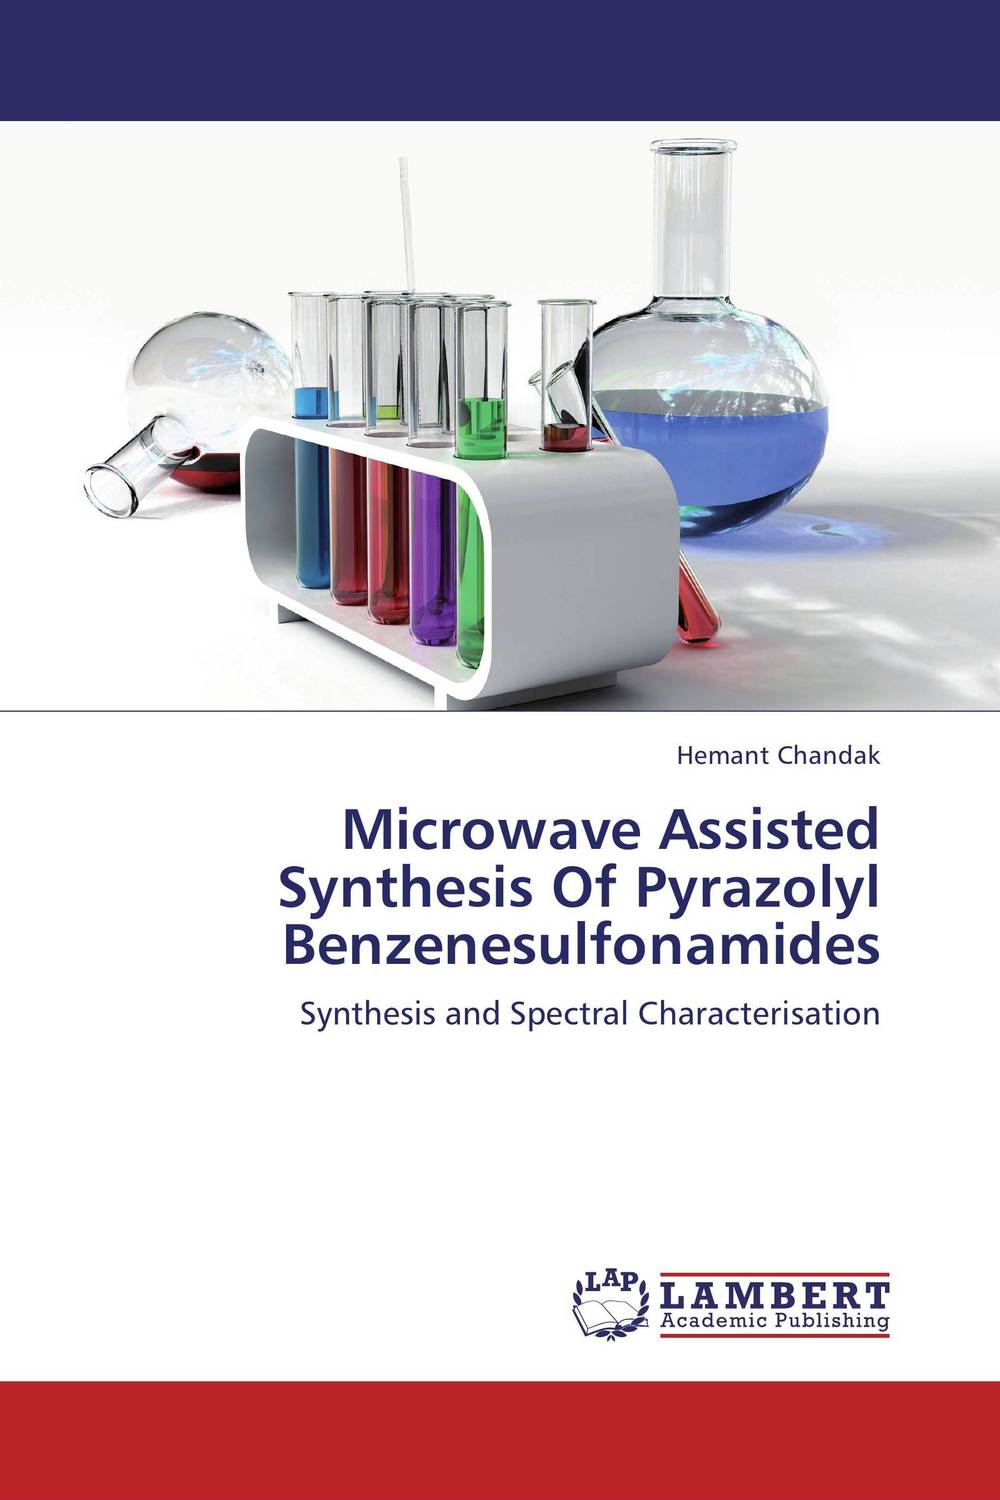 Microwave Assisted Synthesis Of Pyrazolyl Benzenesulfonamides kawther ahmed and karima hagagg microwave synthesis and its textile application